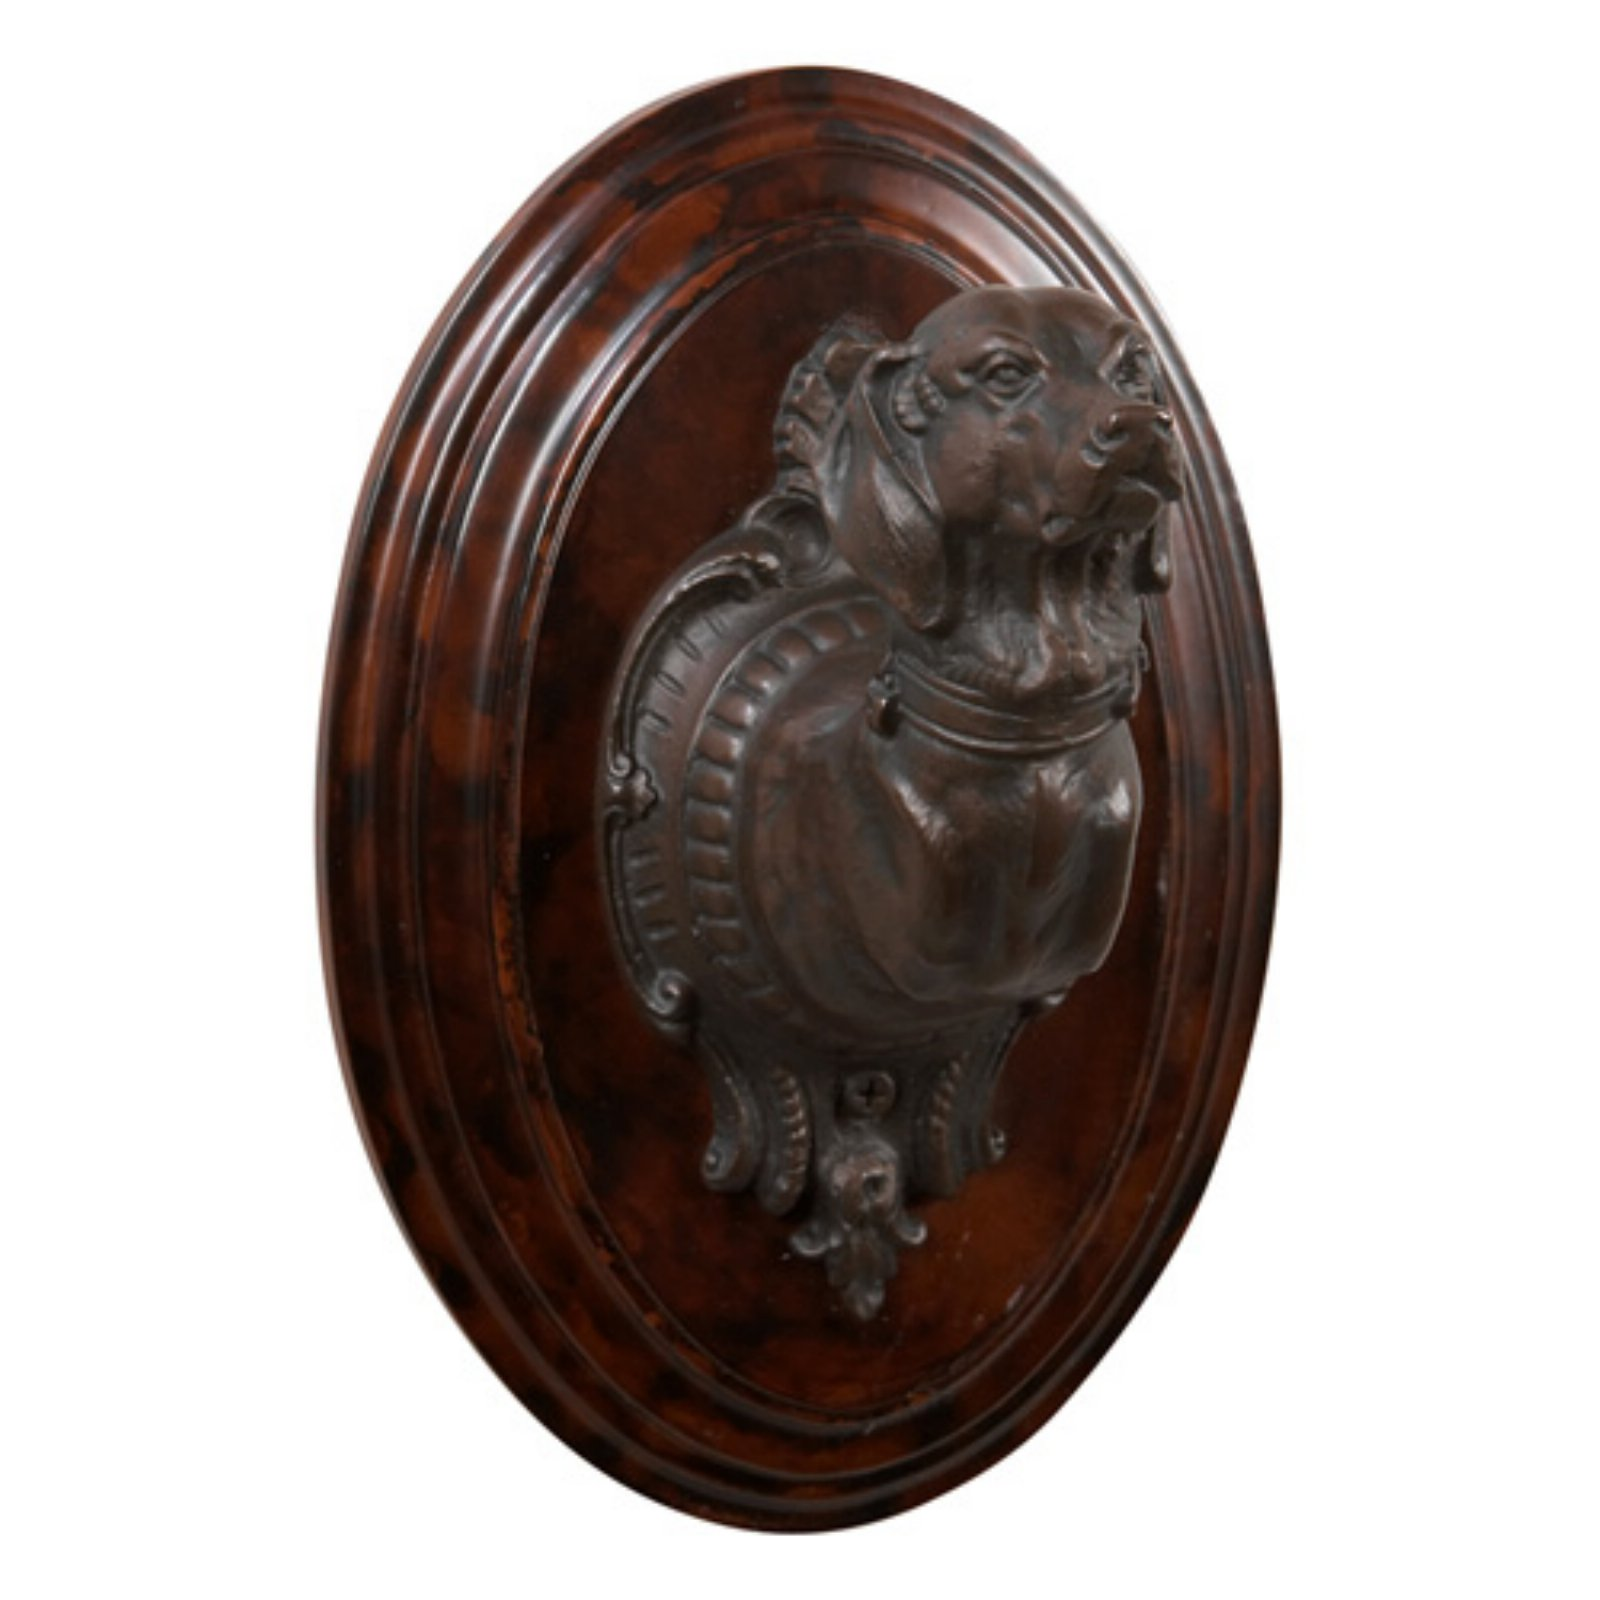 Dachshund Wall Plaque Hook